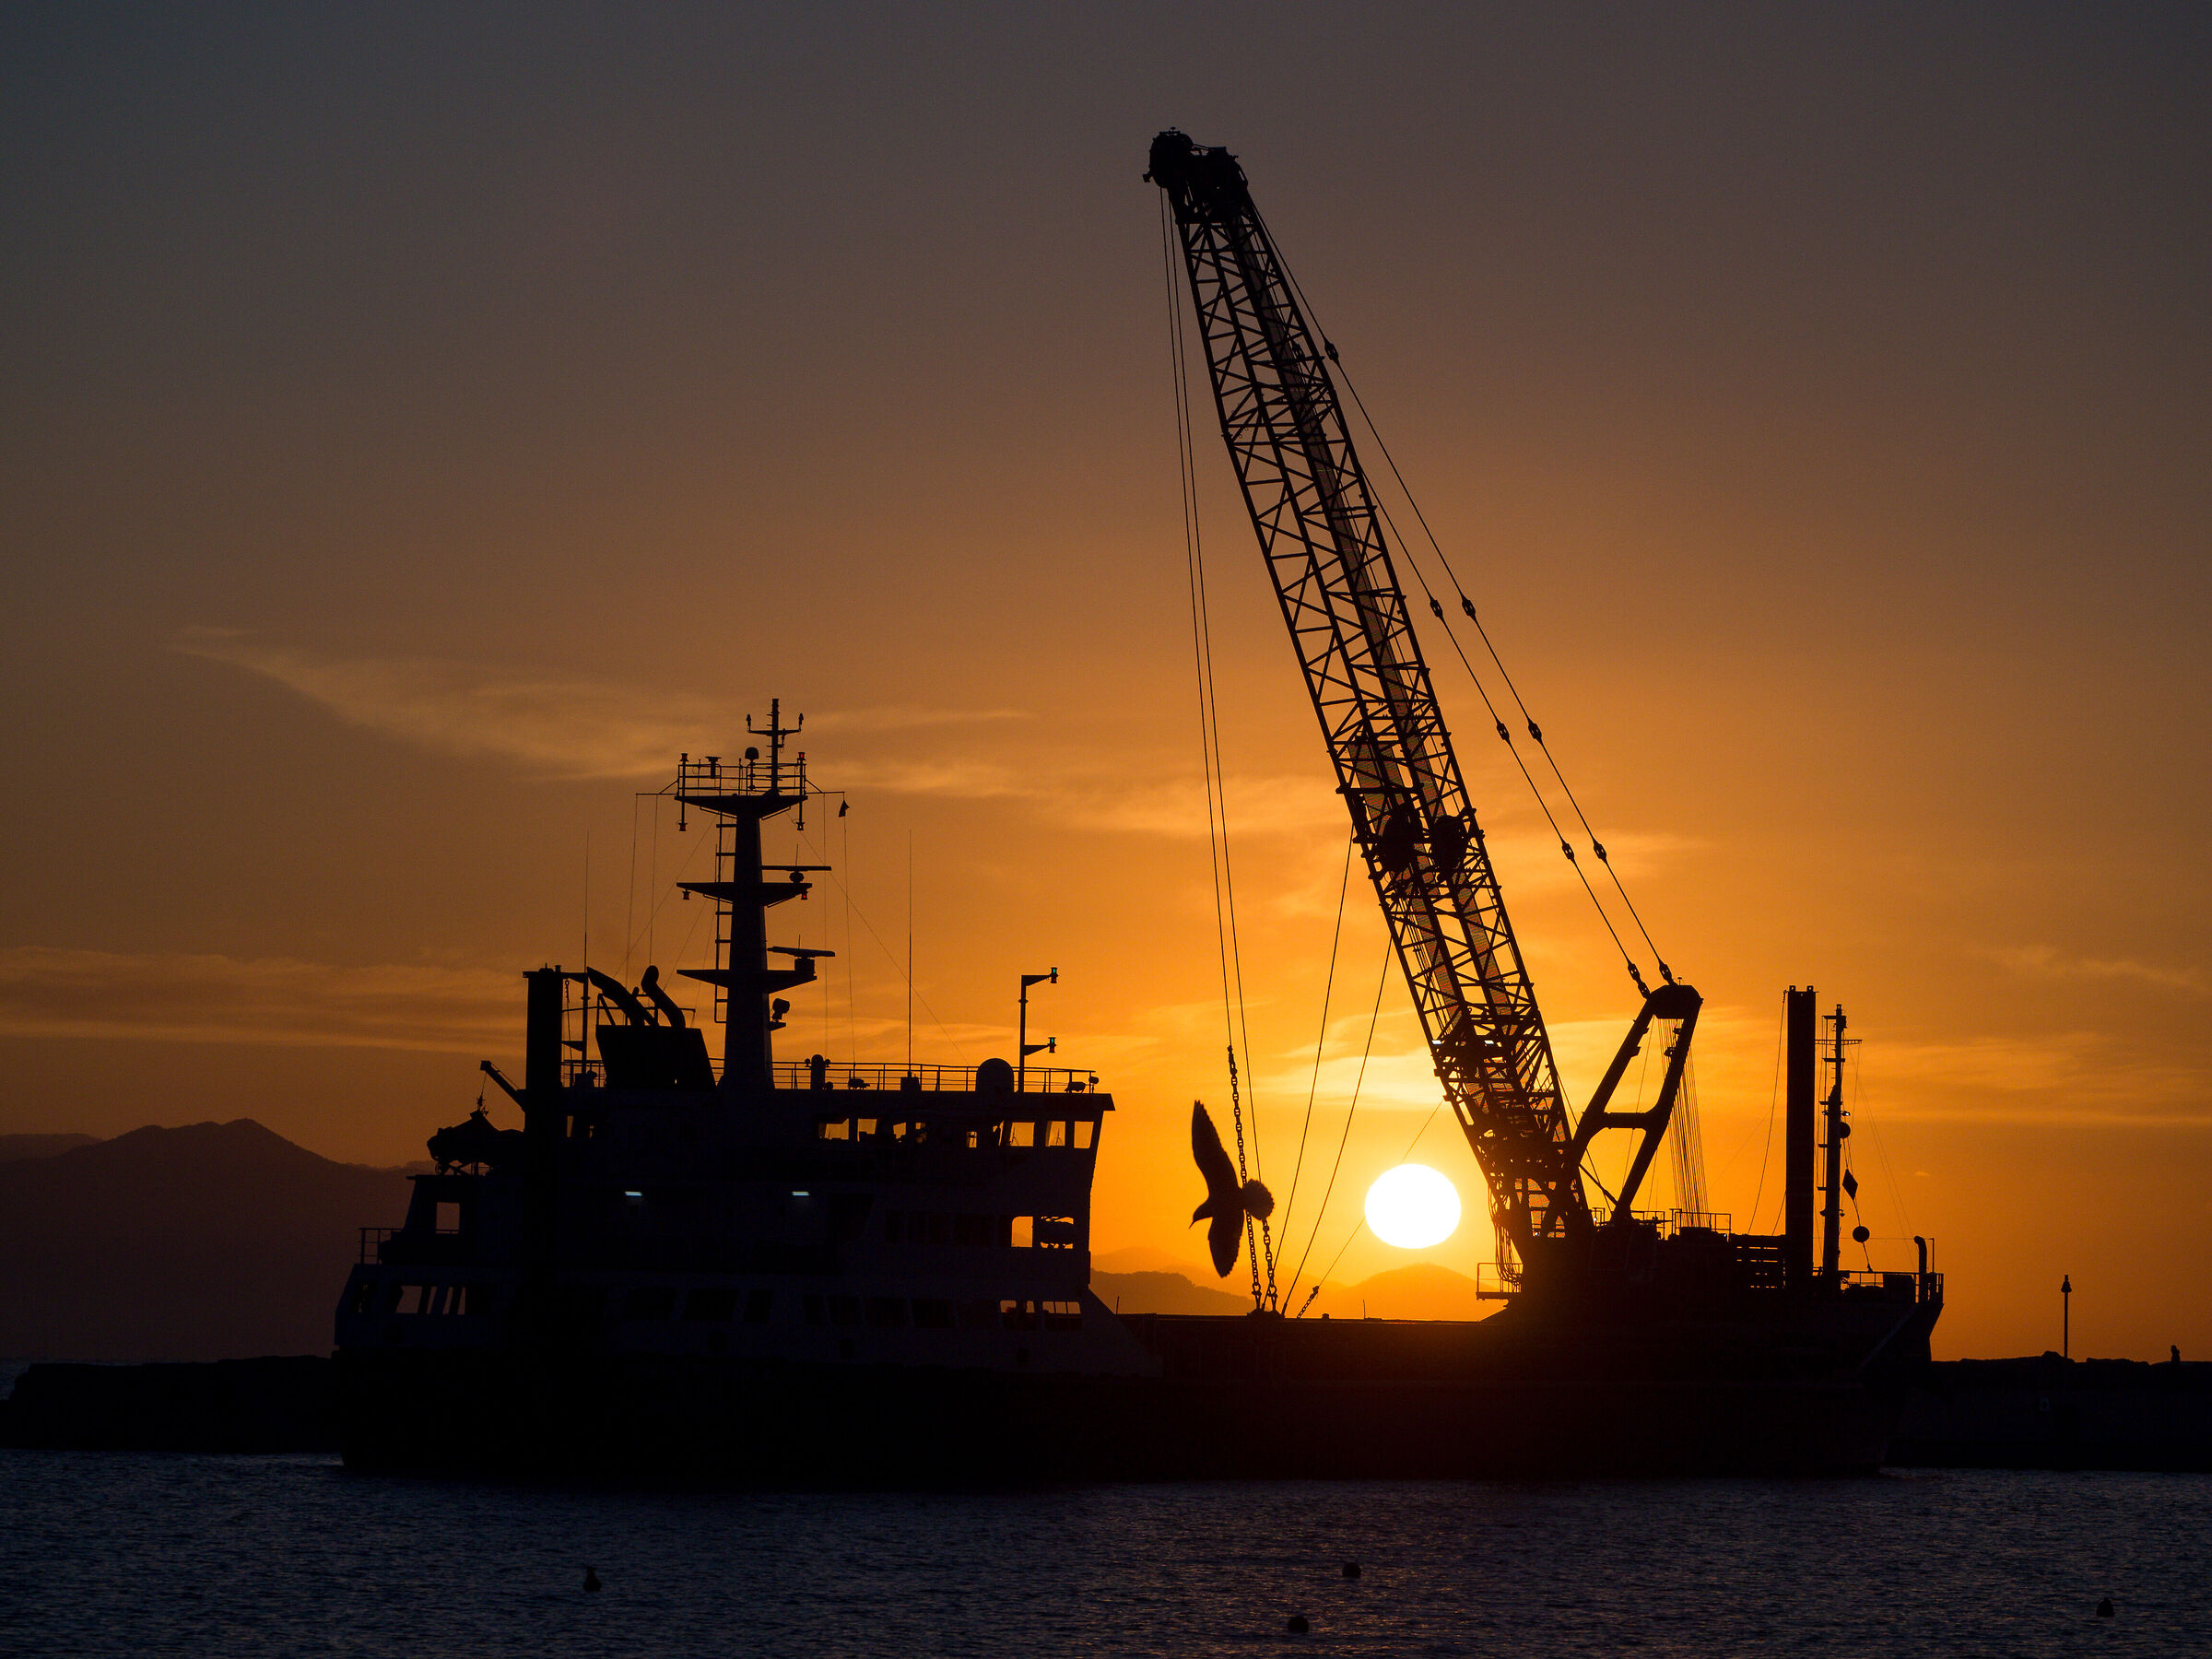 The dredge and the seagull....